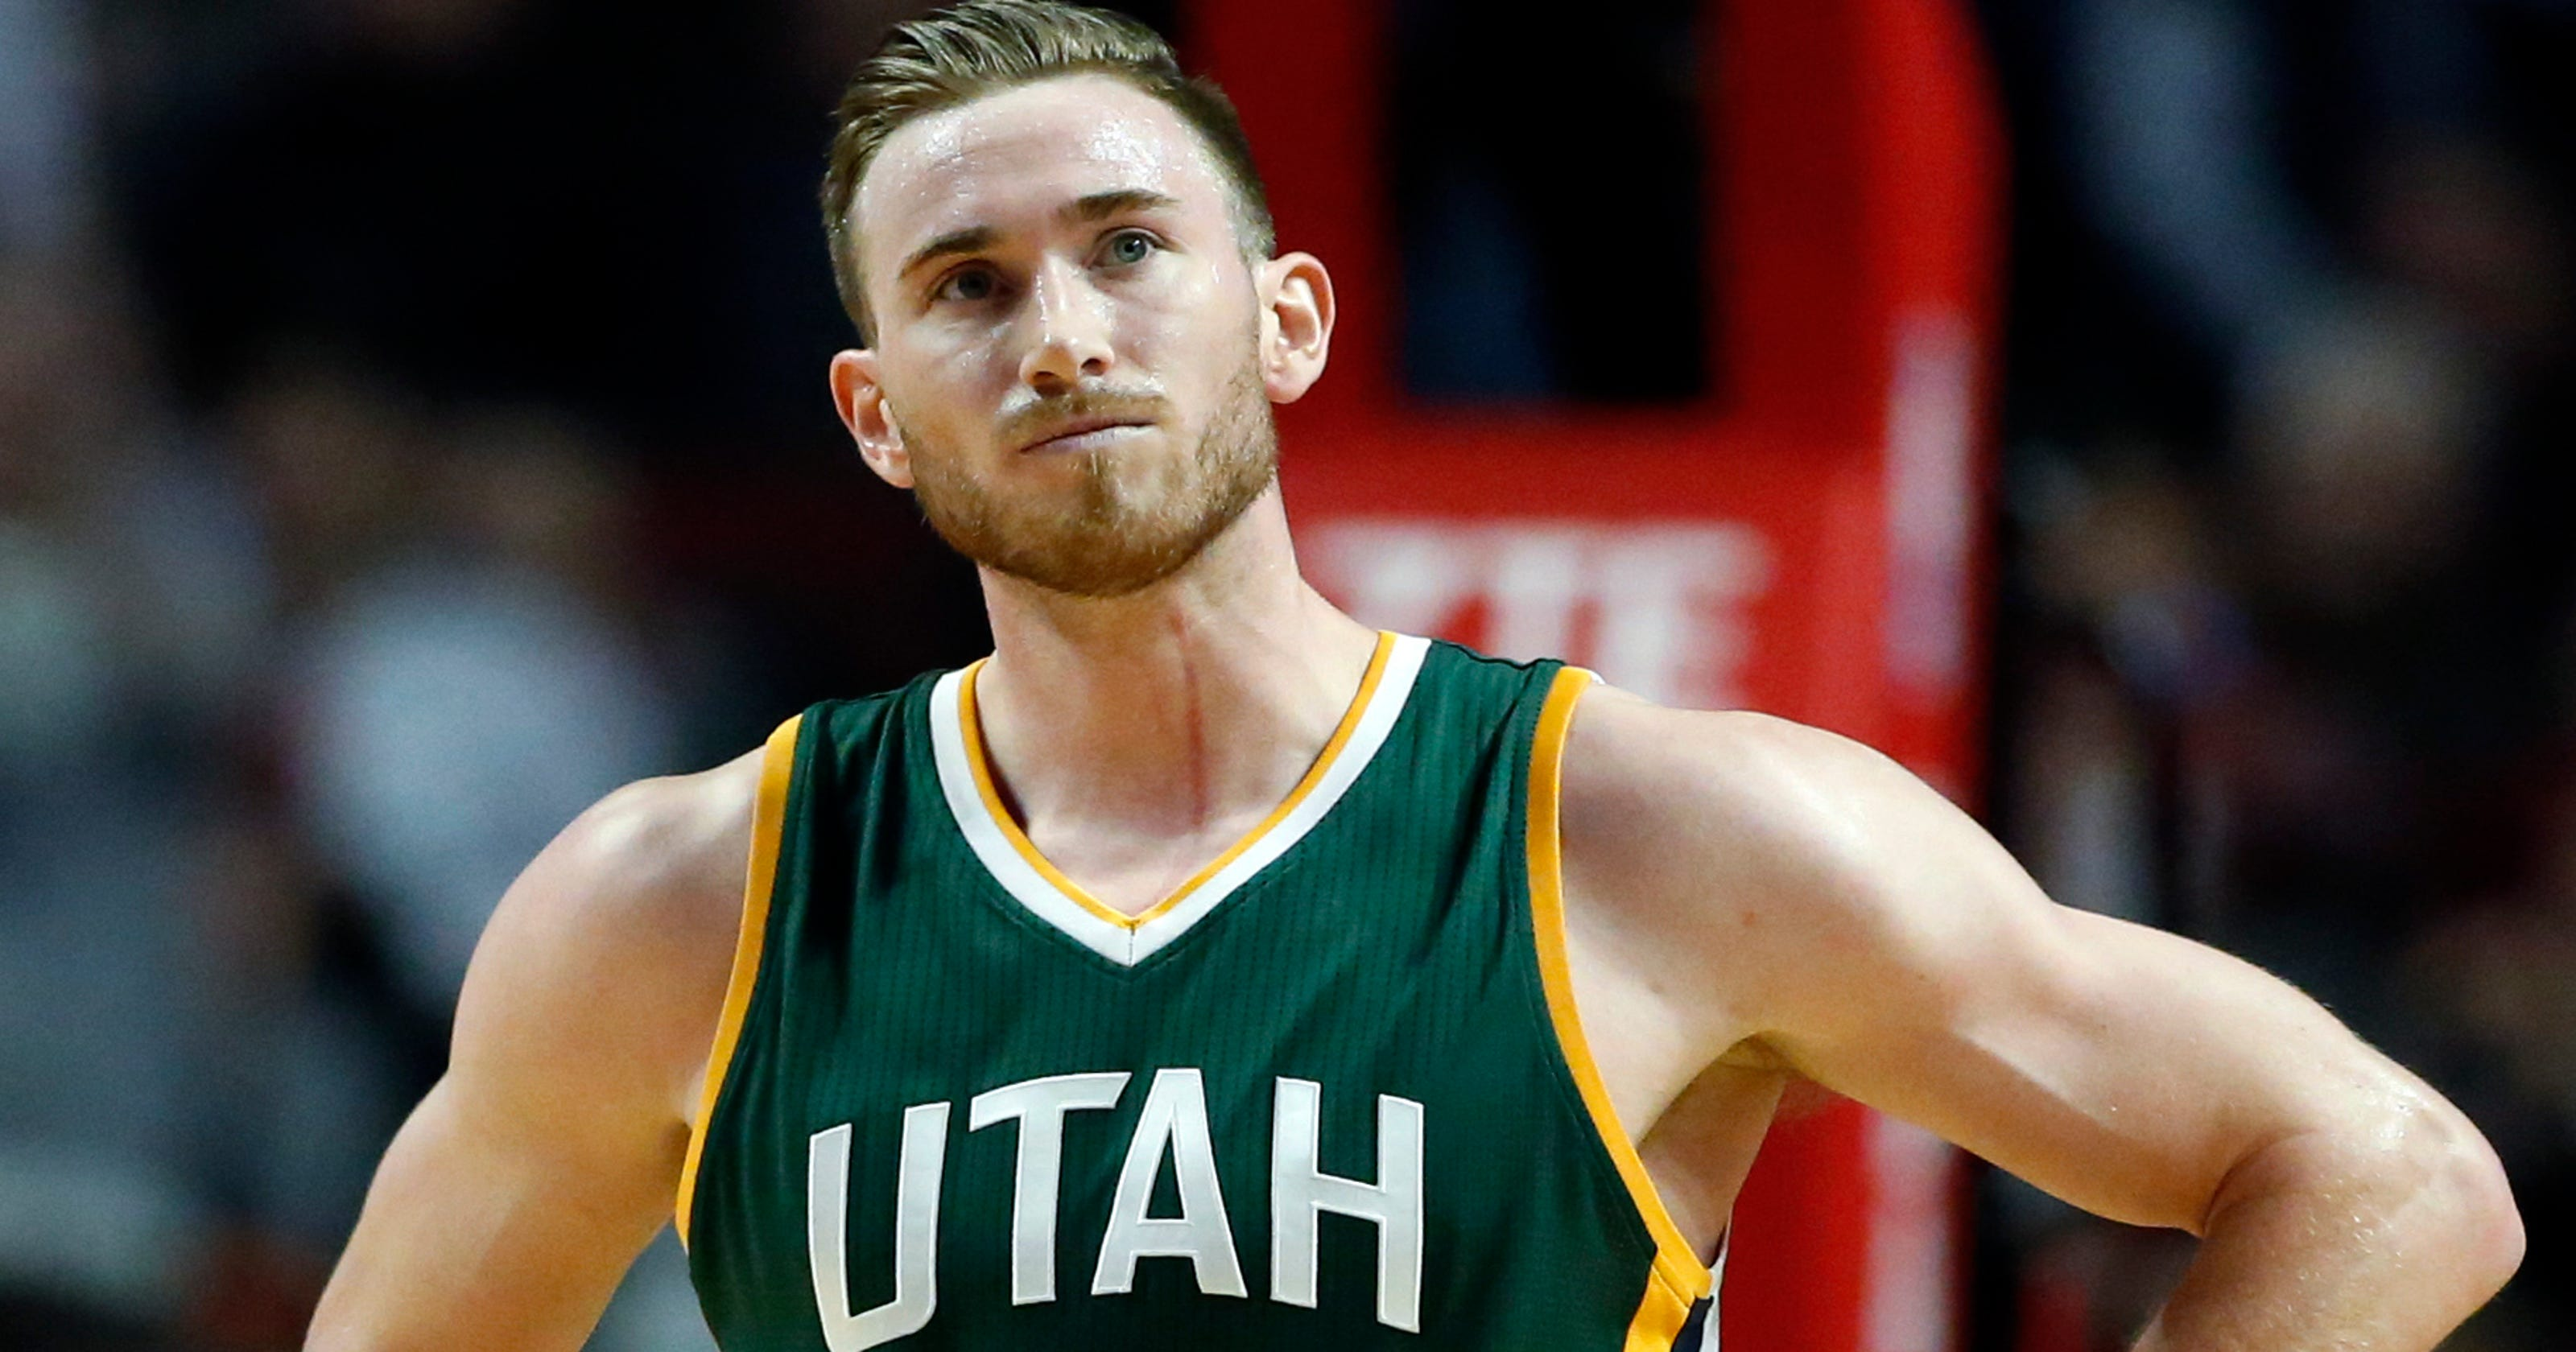 Gordon Hayward s wife calls out internet haters in Instagram post c3c1bb4f5